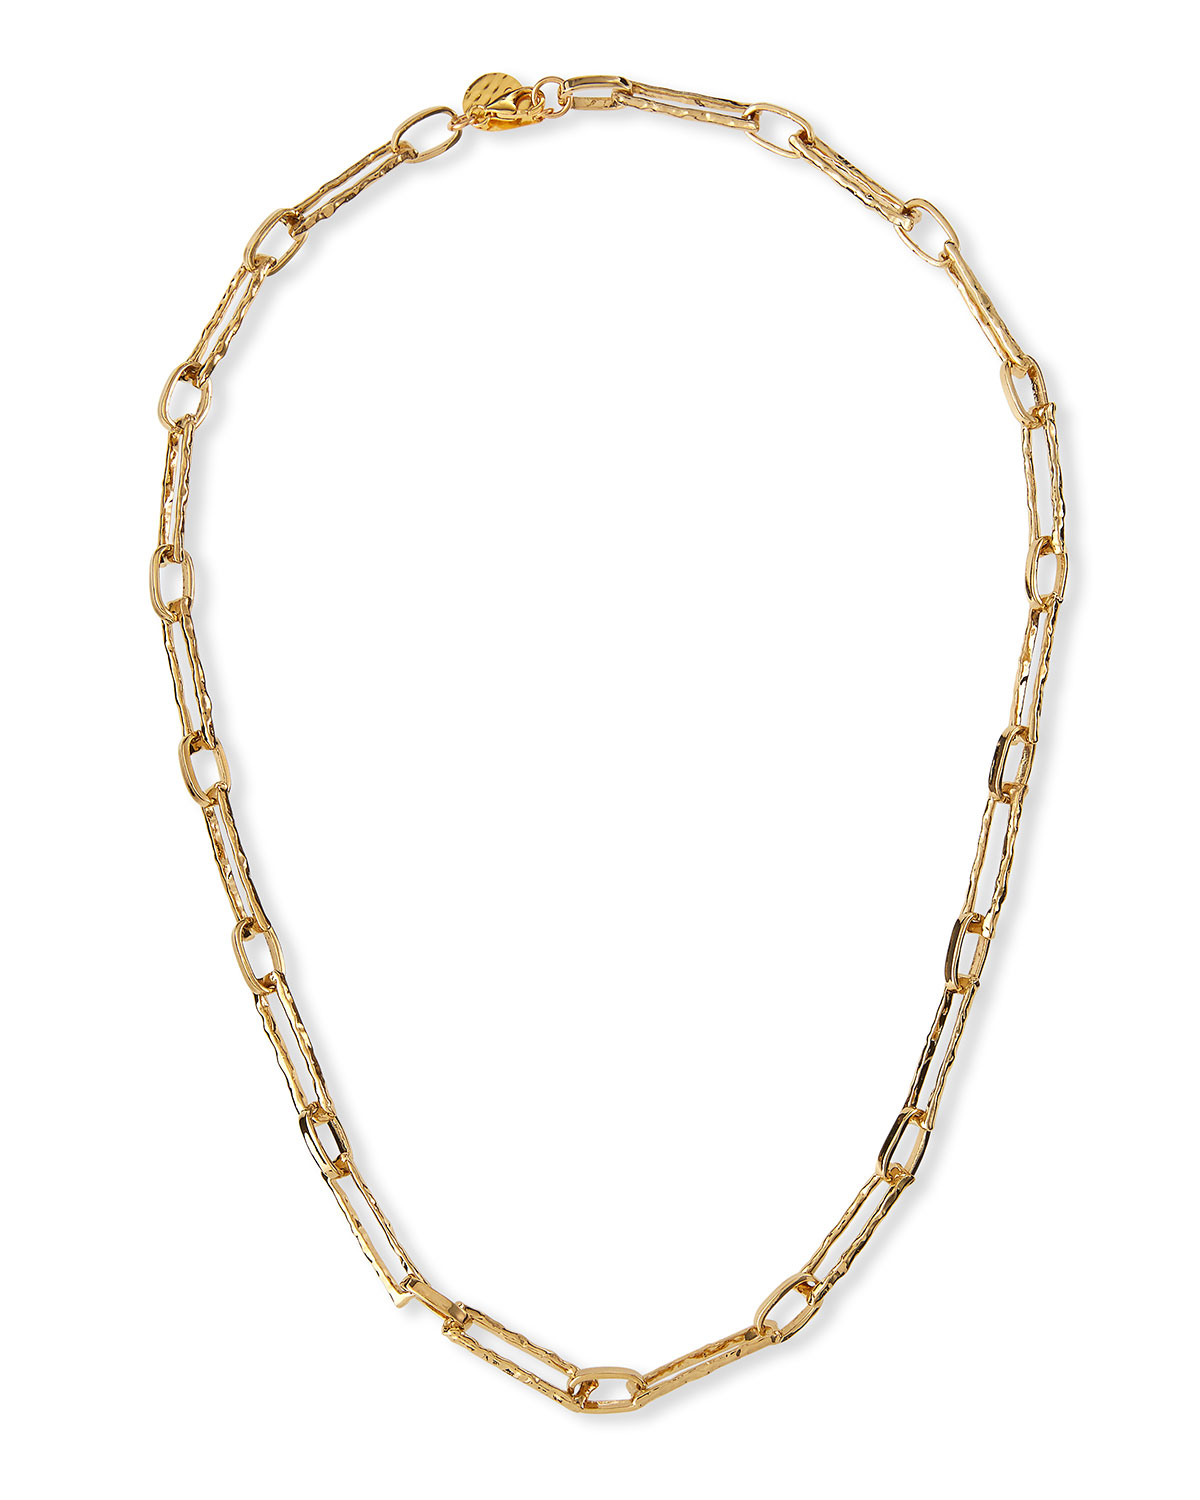 Textured 24k Gold-Plate Chain Necklace